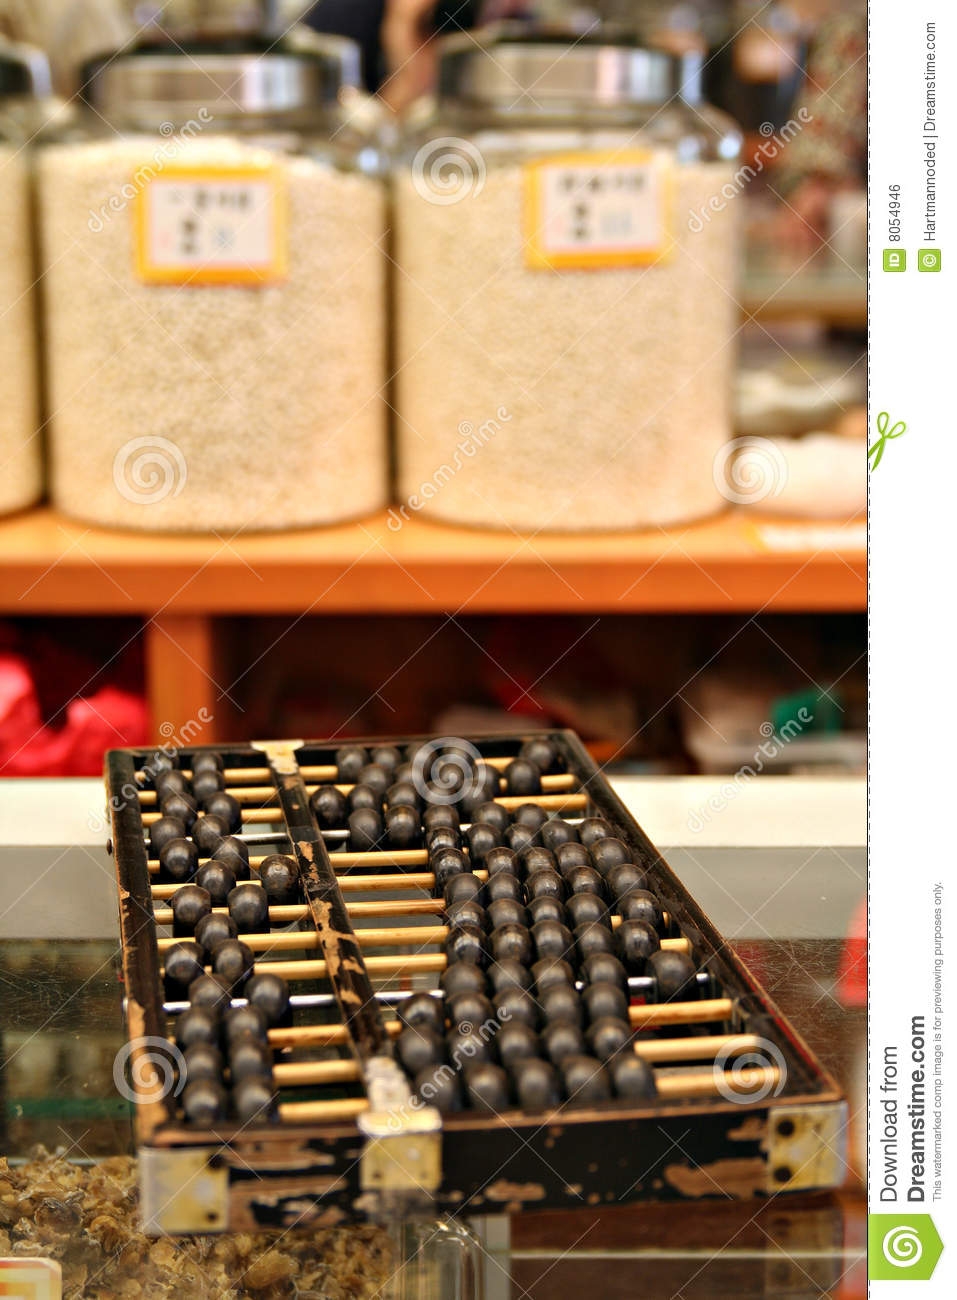 Abacus in china town royalty free stock image image 8054946 for Abacus cuisine of china